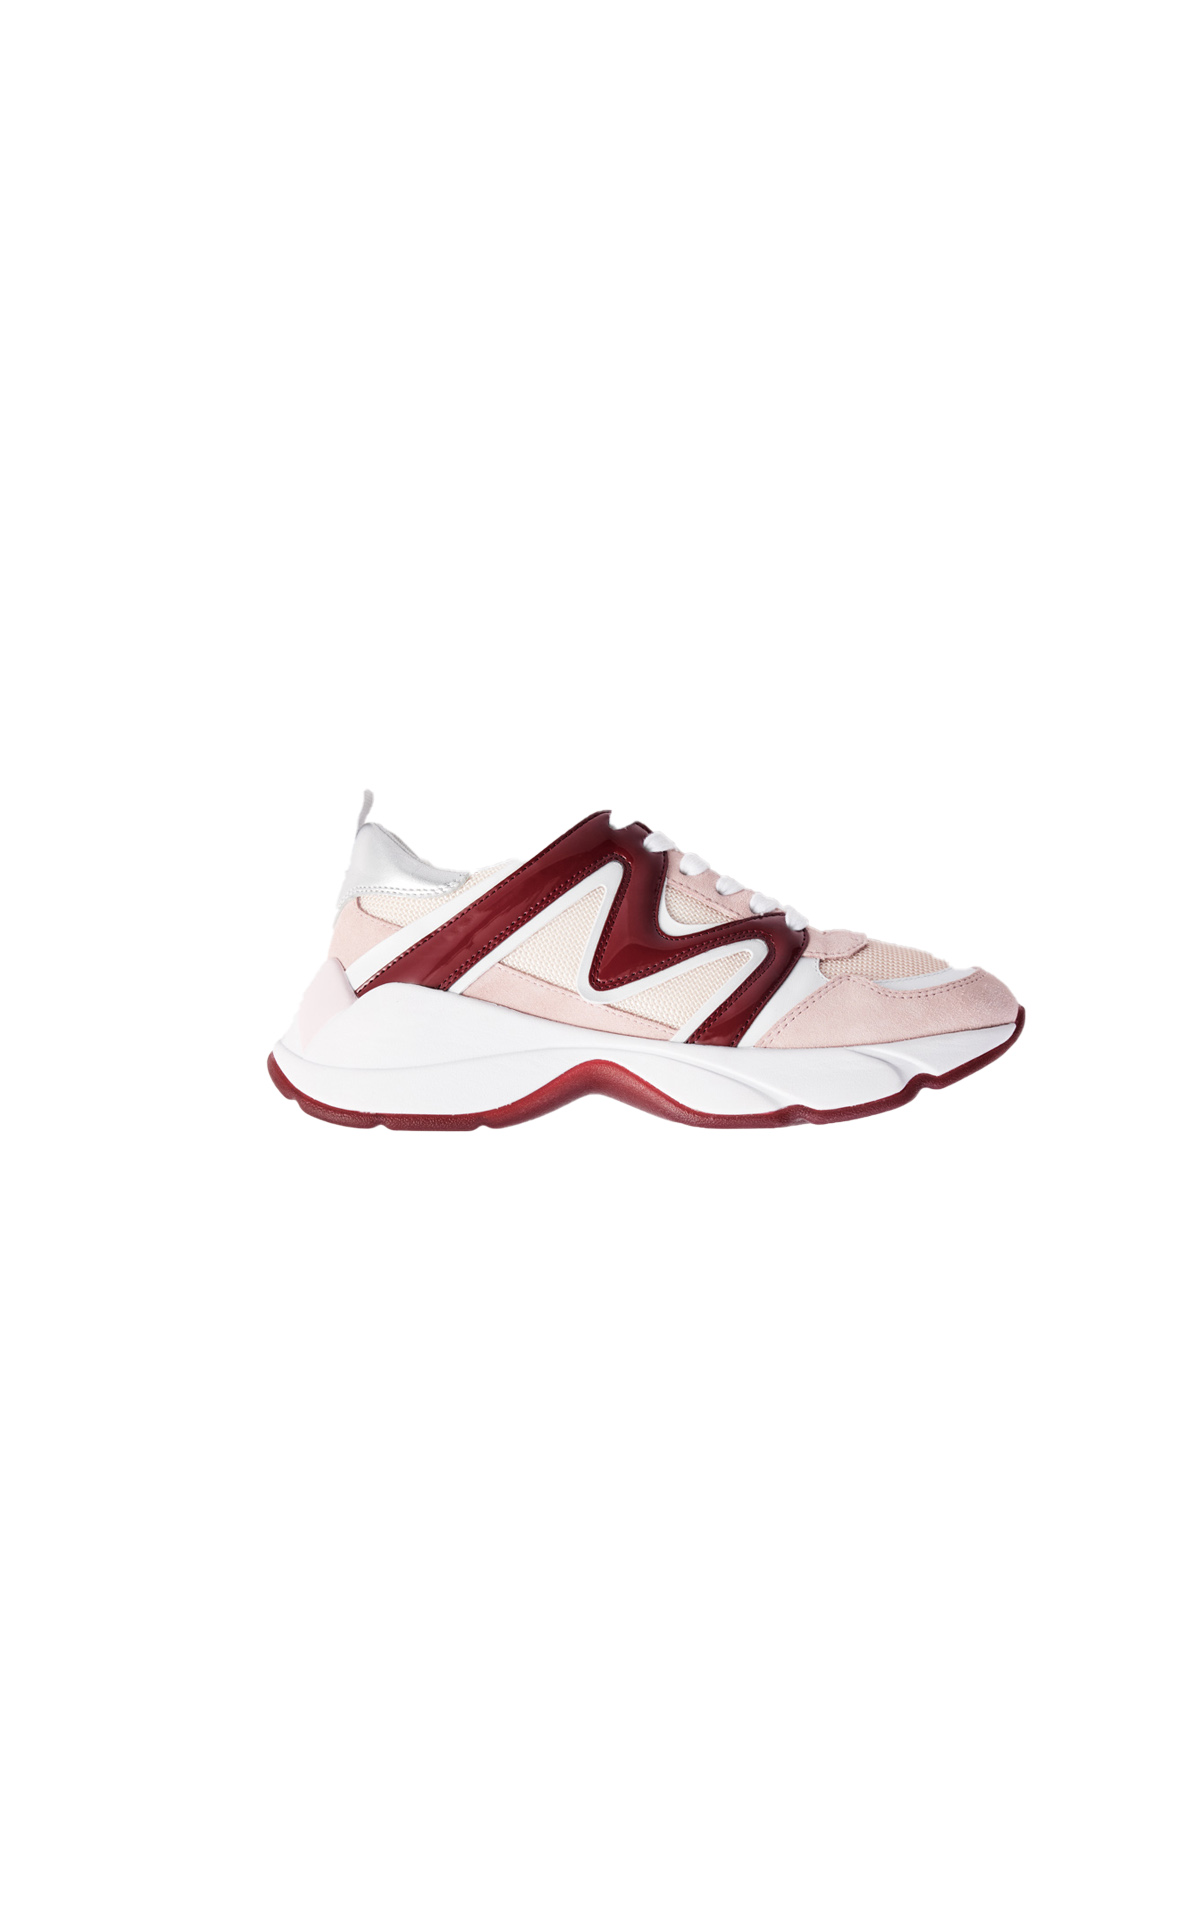 Maje W20 mixed material sneakers at The Bicester Village Shopping Collection